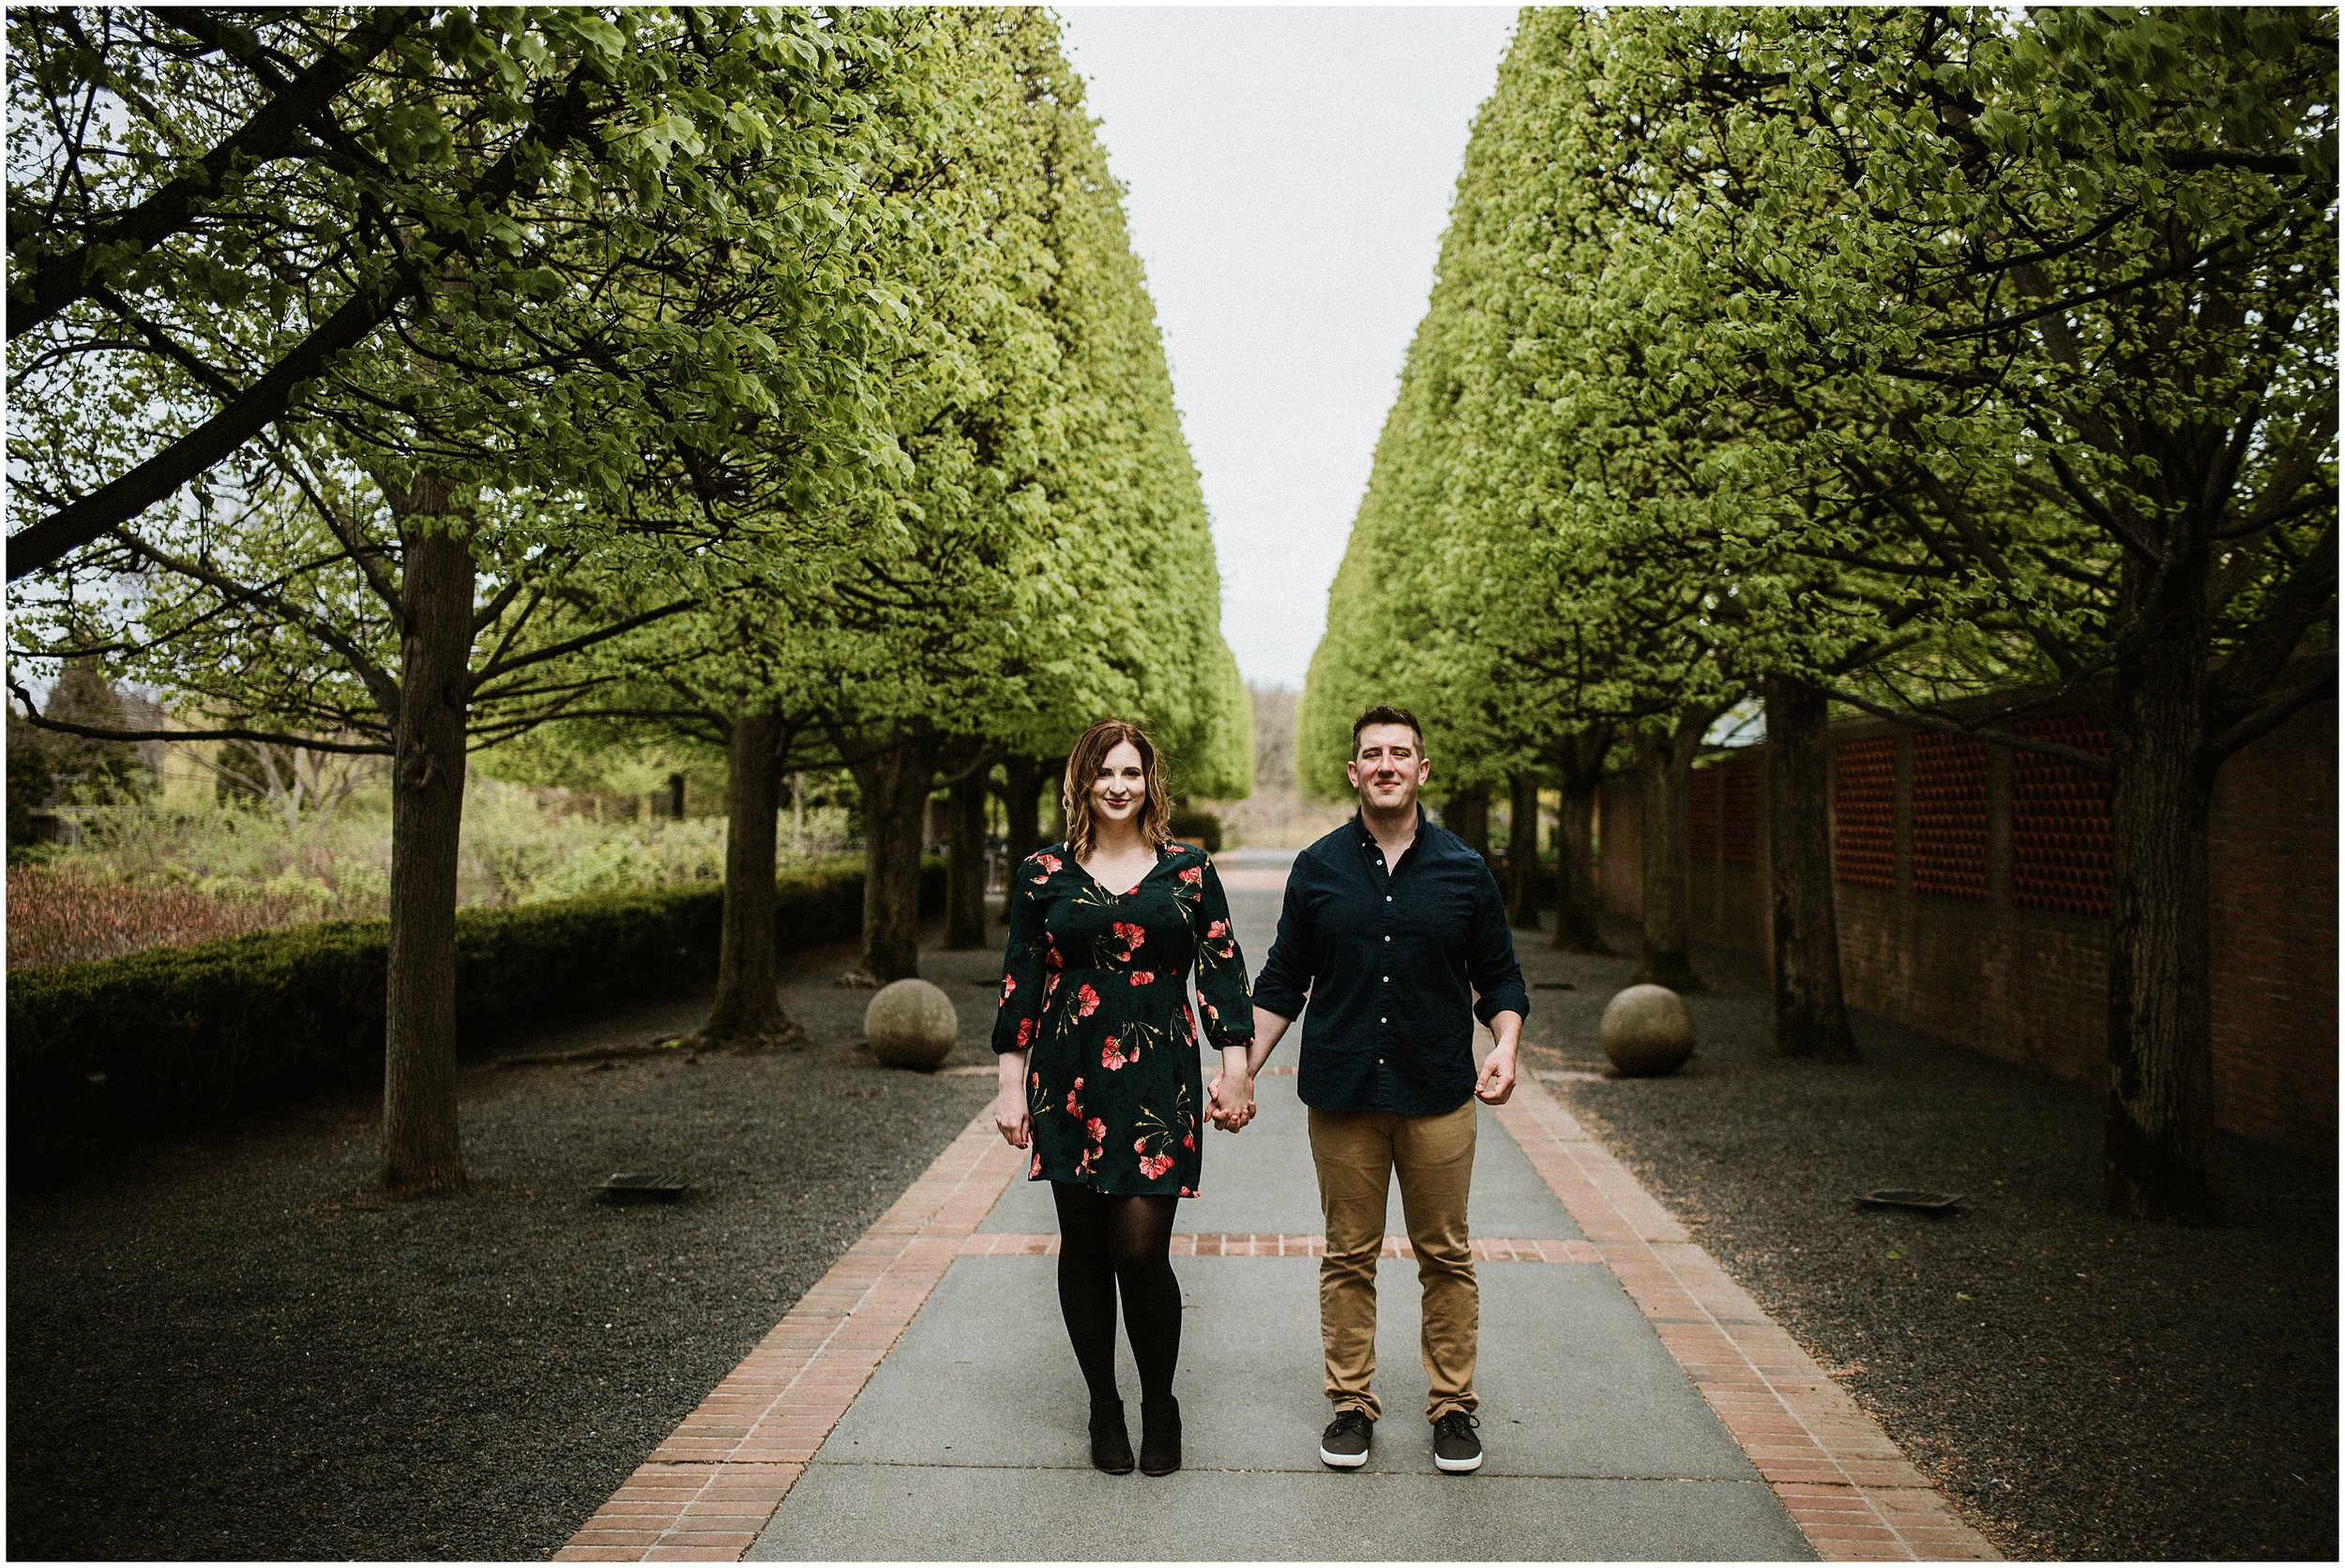 Melissa And David Spring Engagement Shoot Chicago Botanic Garden